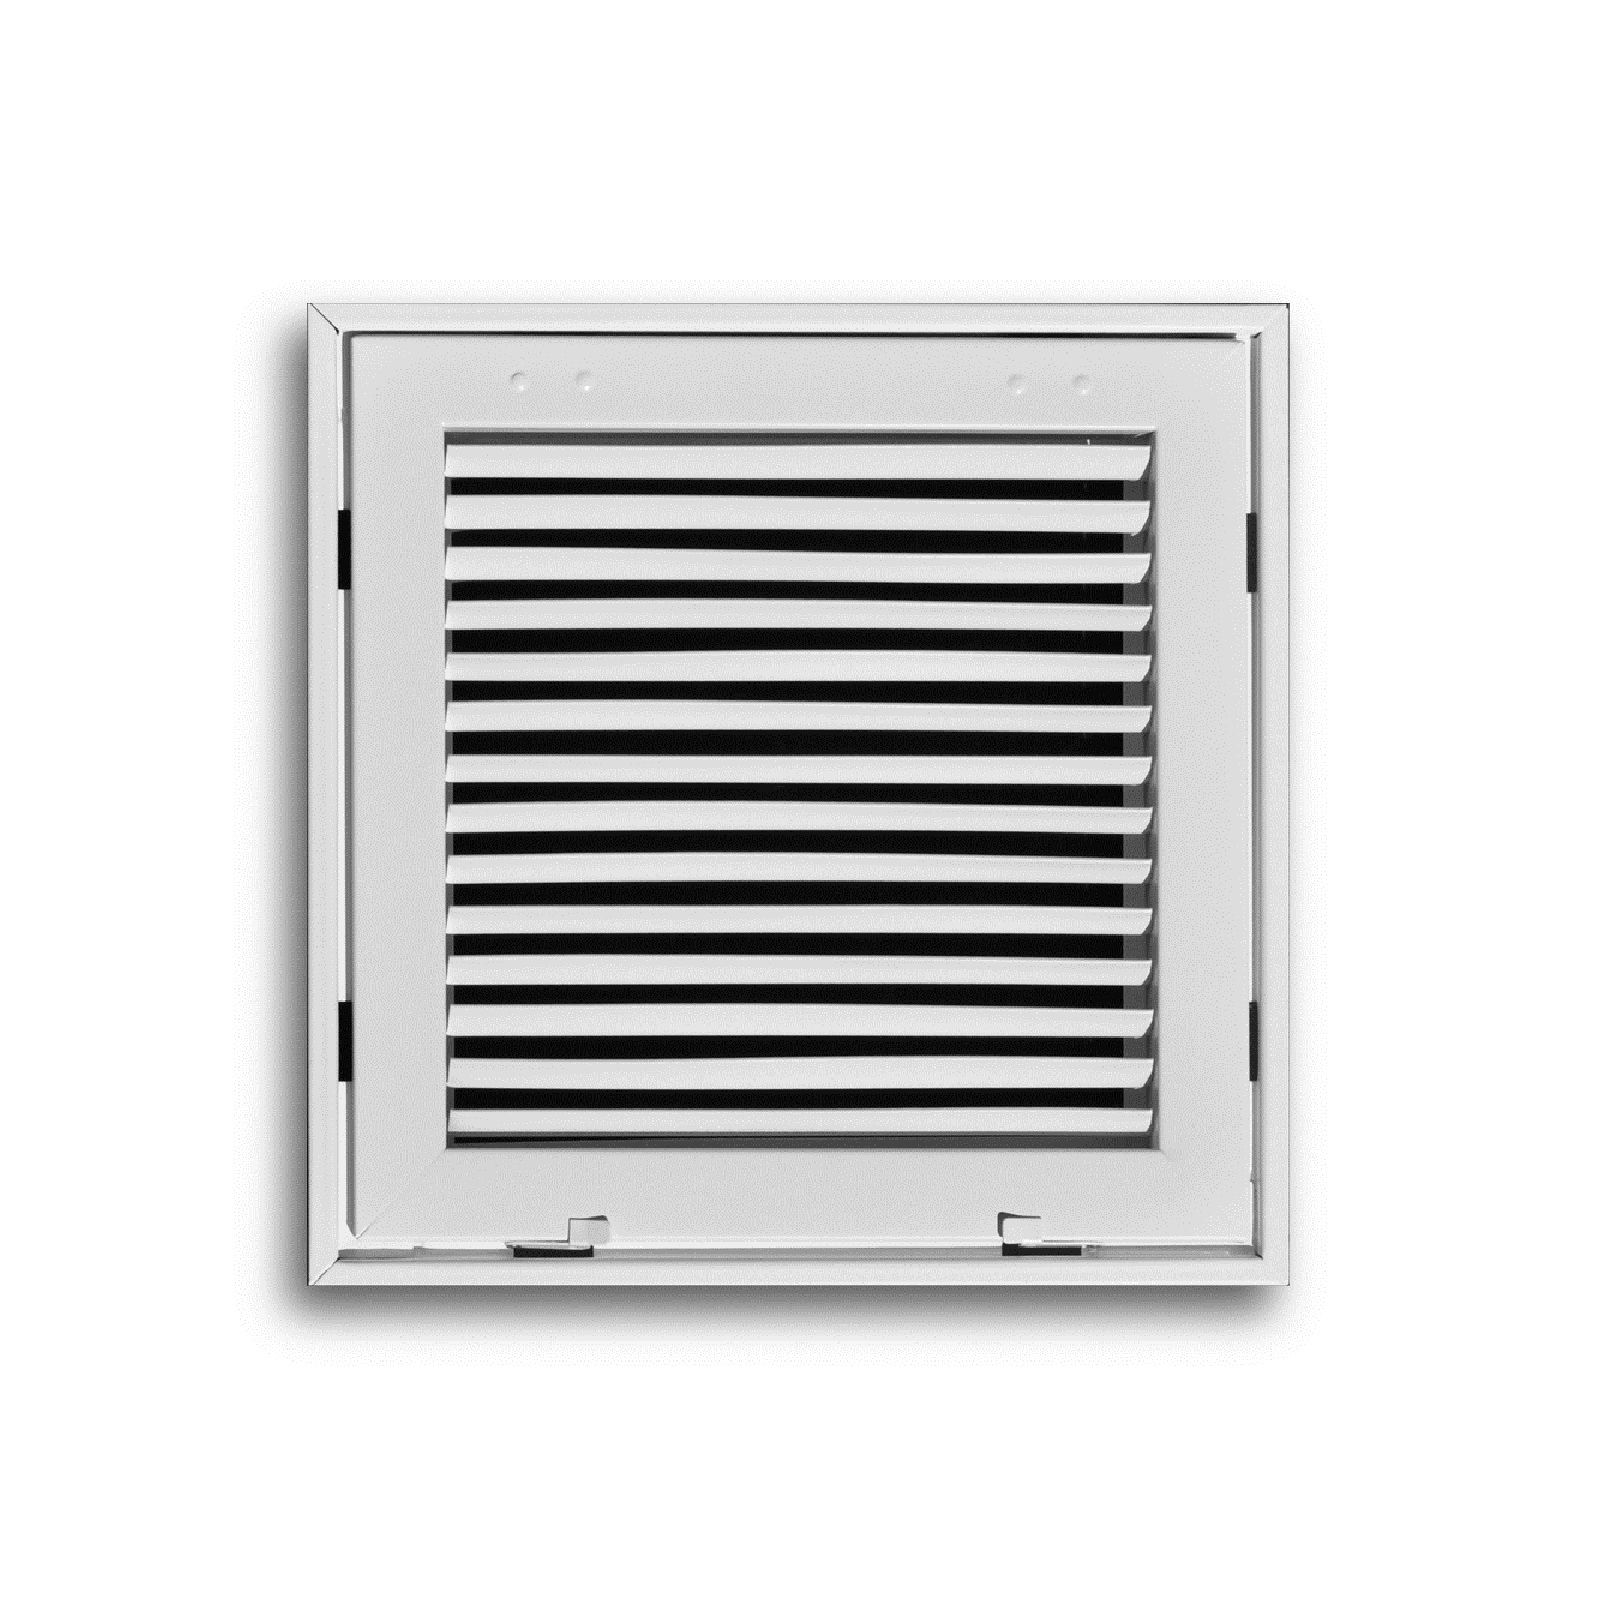 "TRUaire 290 10x10 - Steel Fixed Bar Return Air Filter Grille, White, 10"" x 10"""